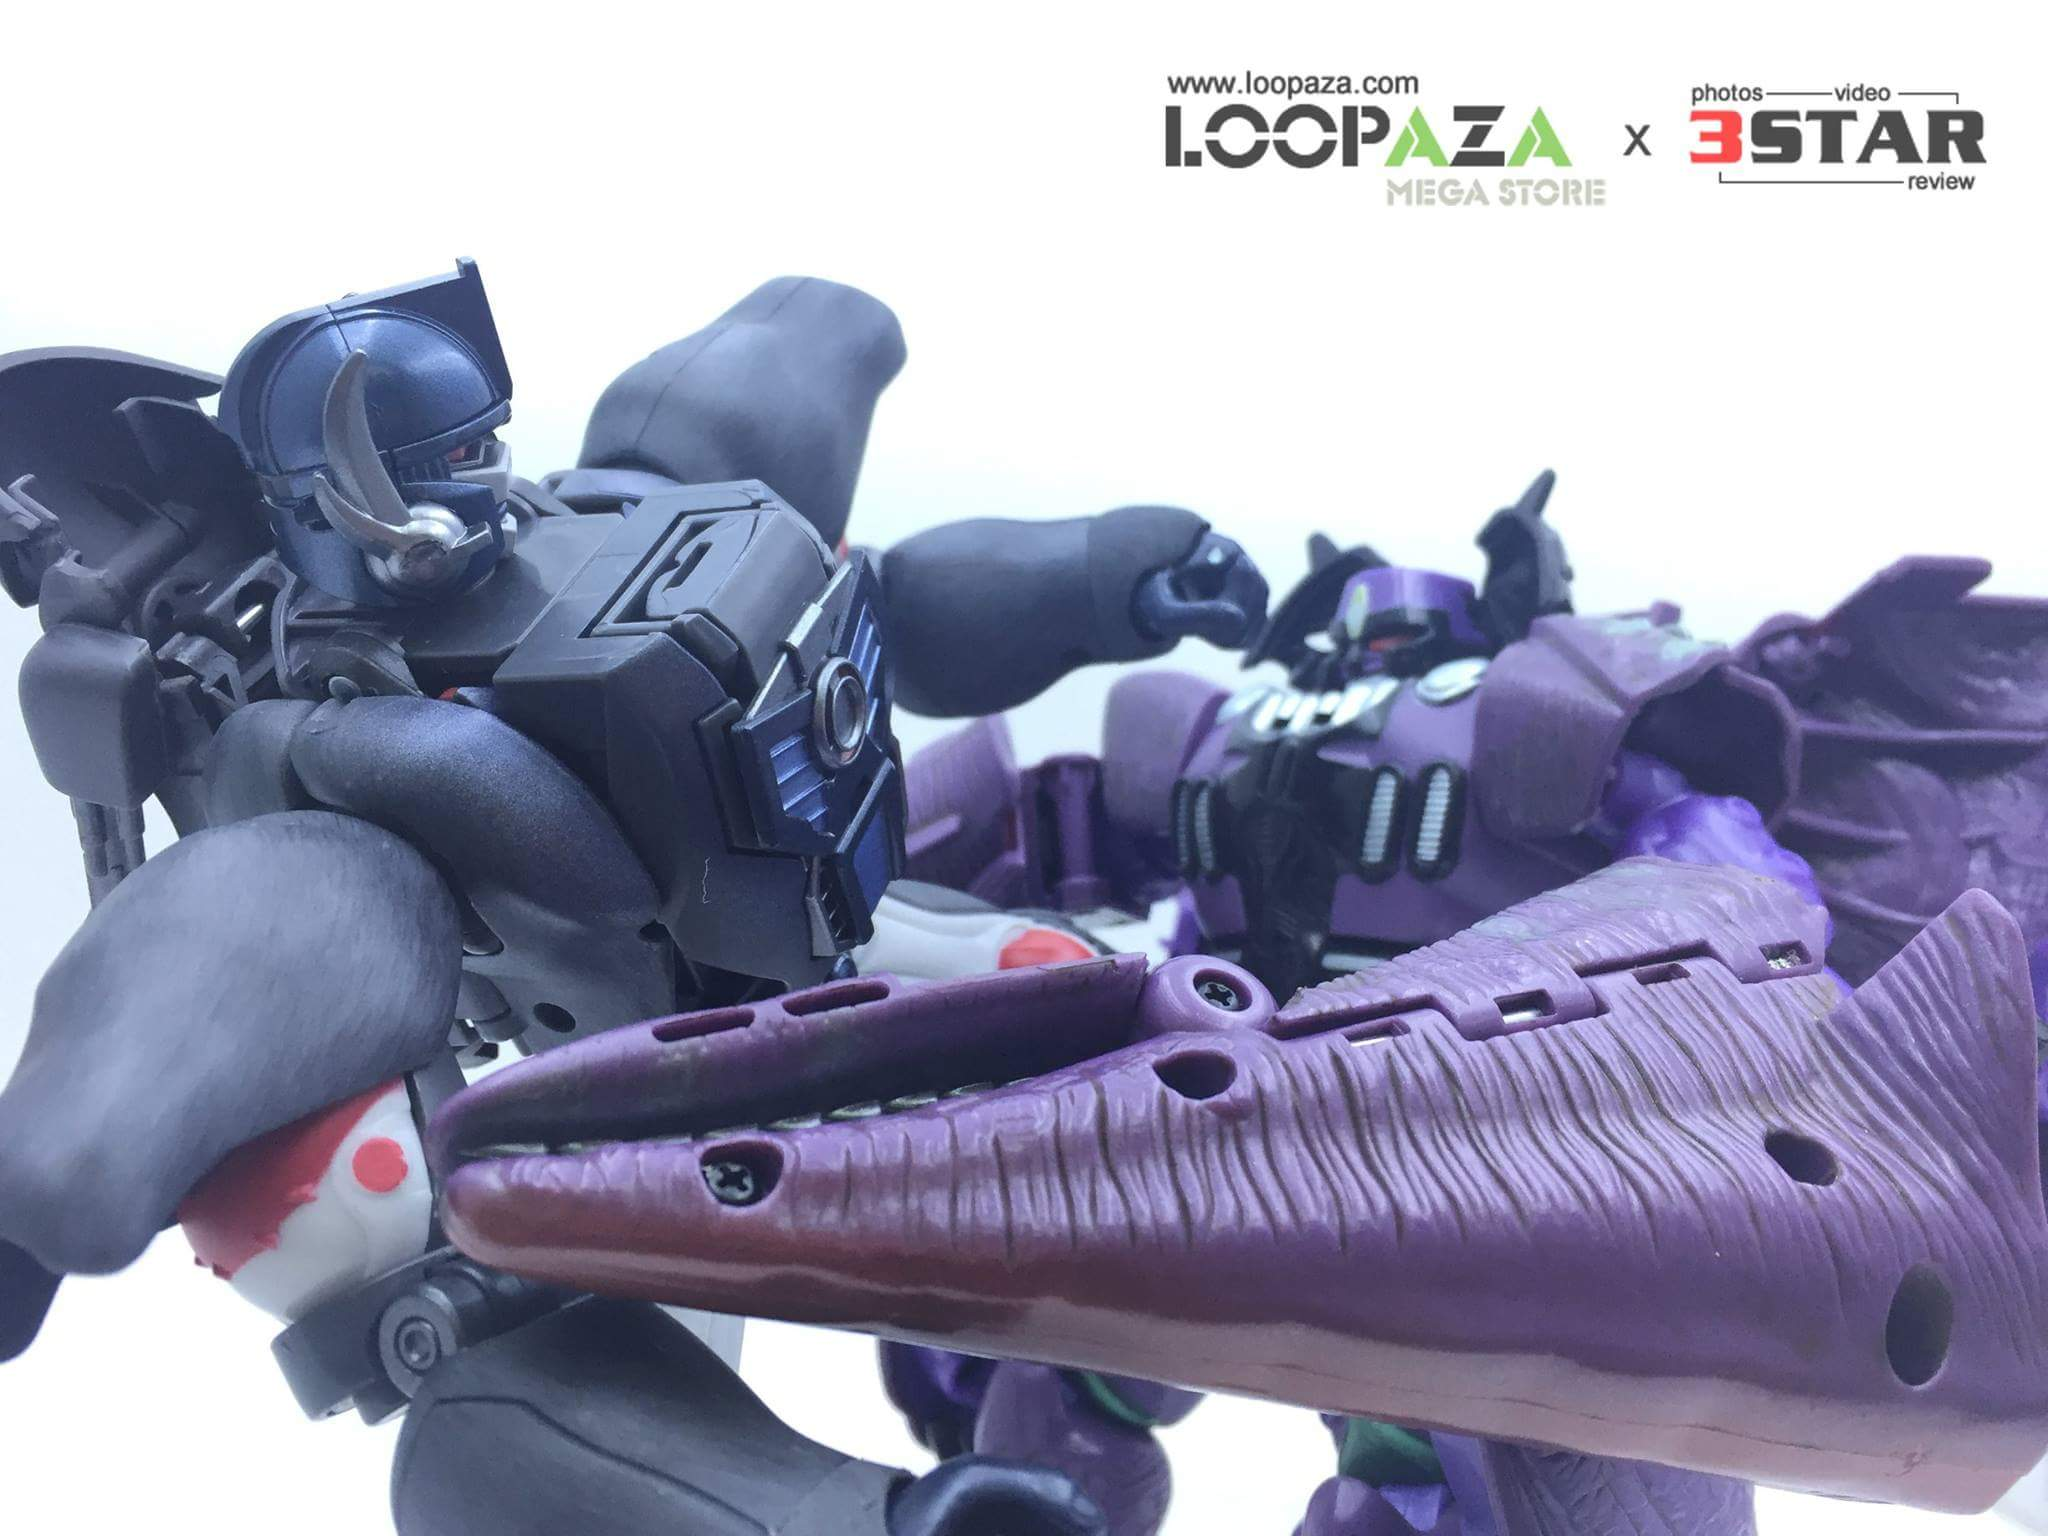 [Masterpiece] MP-32, MP-38 Optimus Primal et MP-38+ Burning Convoy (Beast Wars) - Page 3 BxqbVHSG